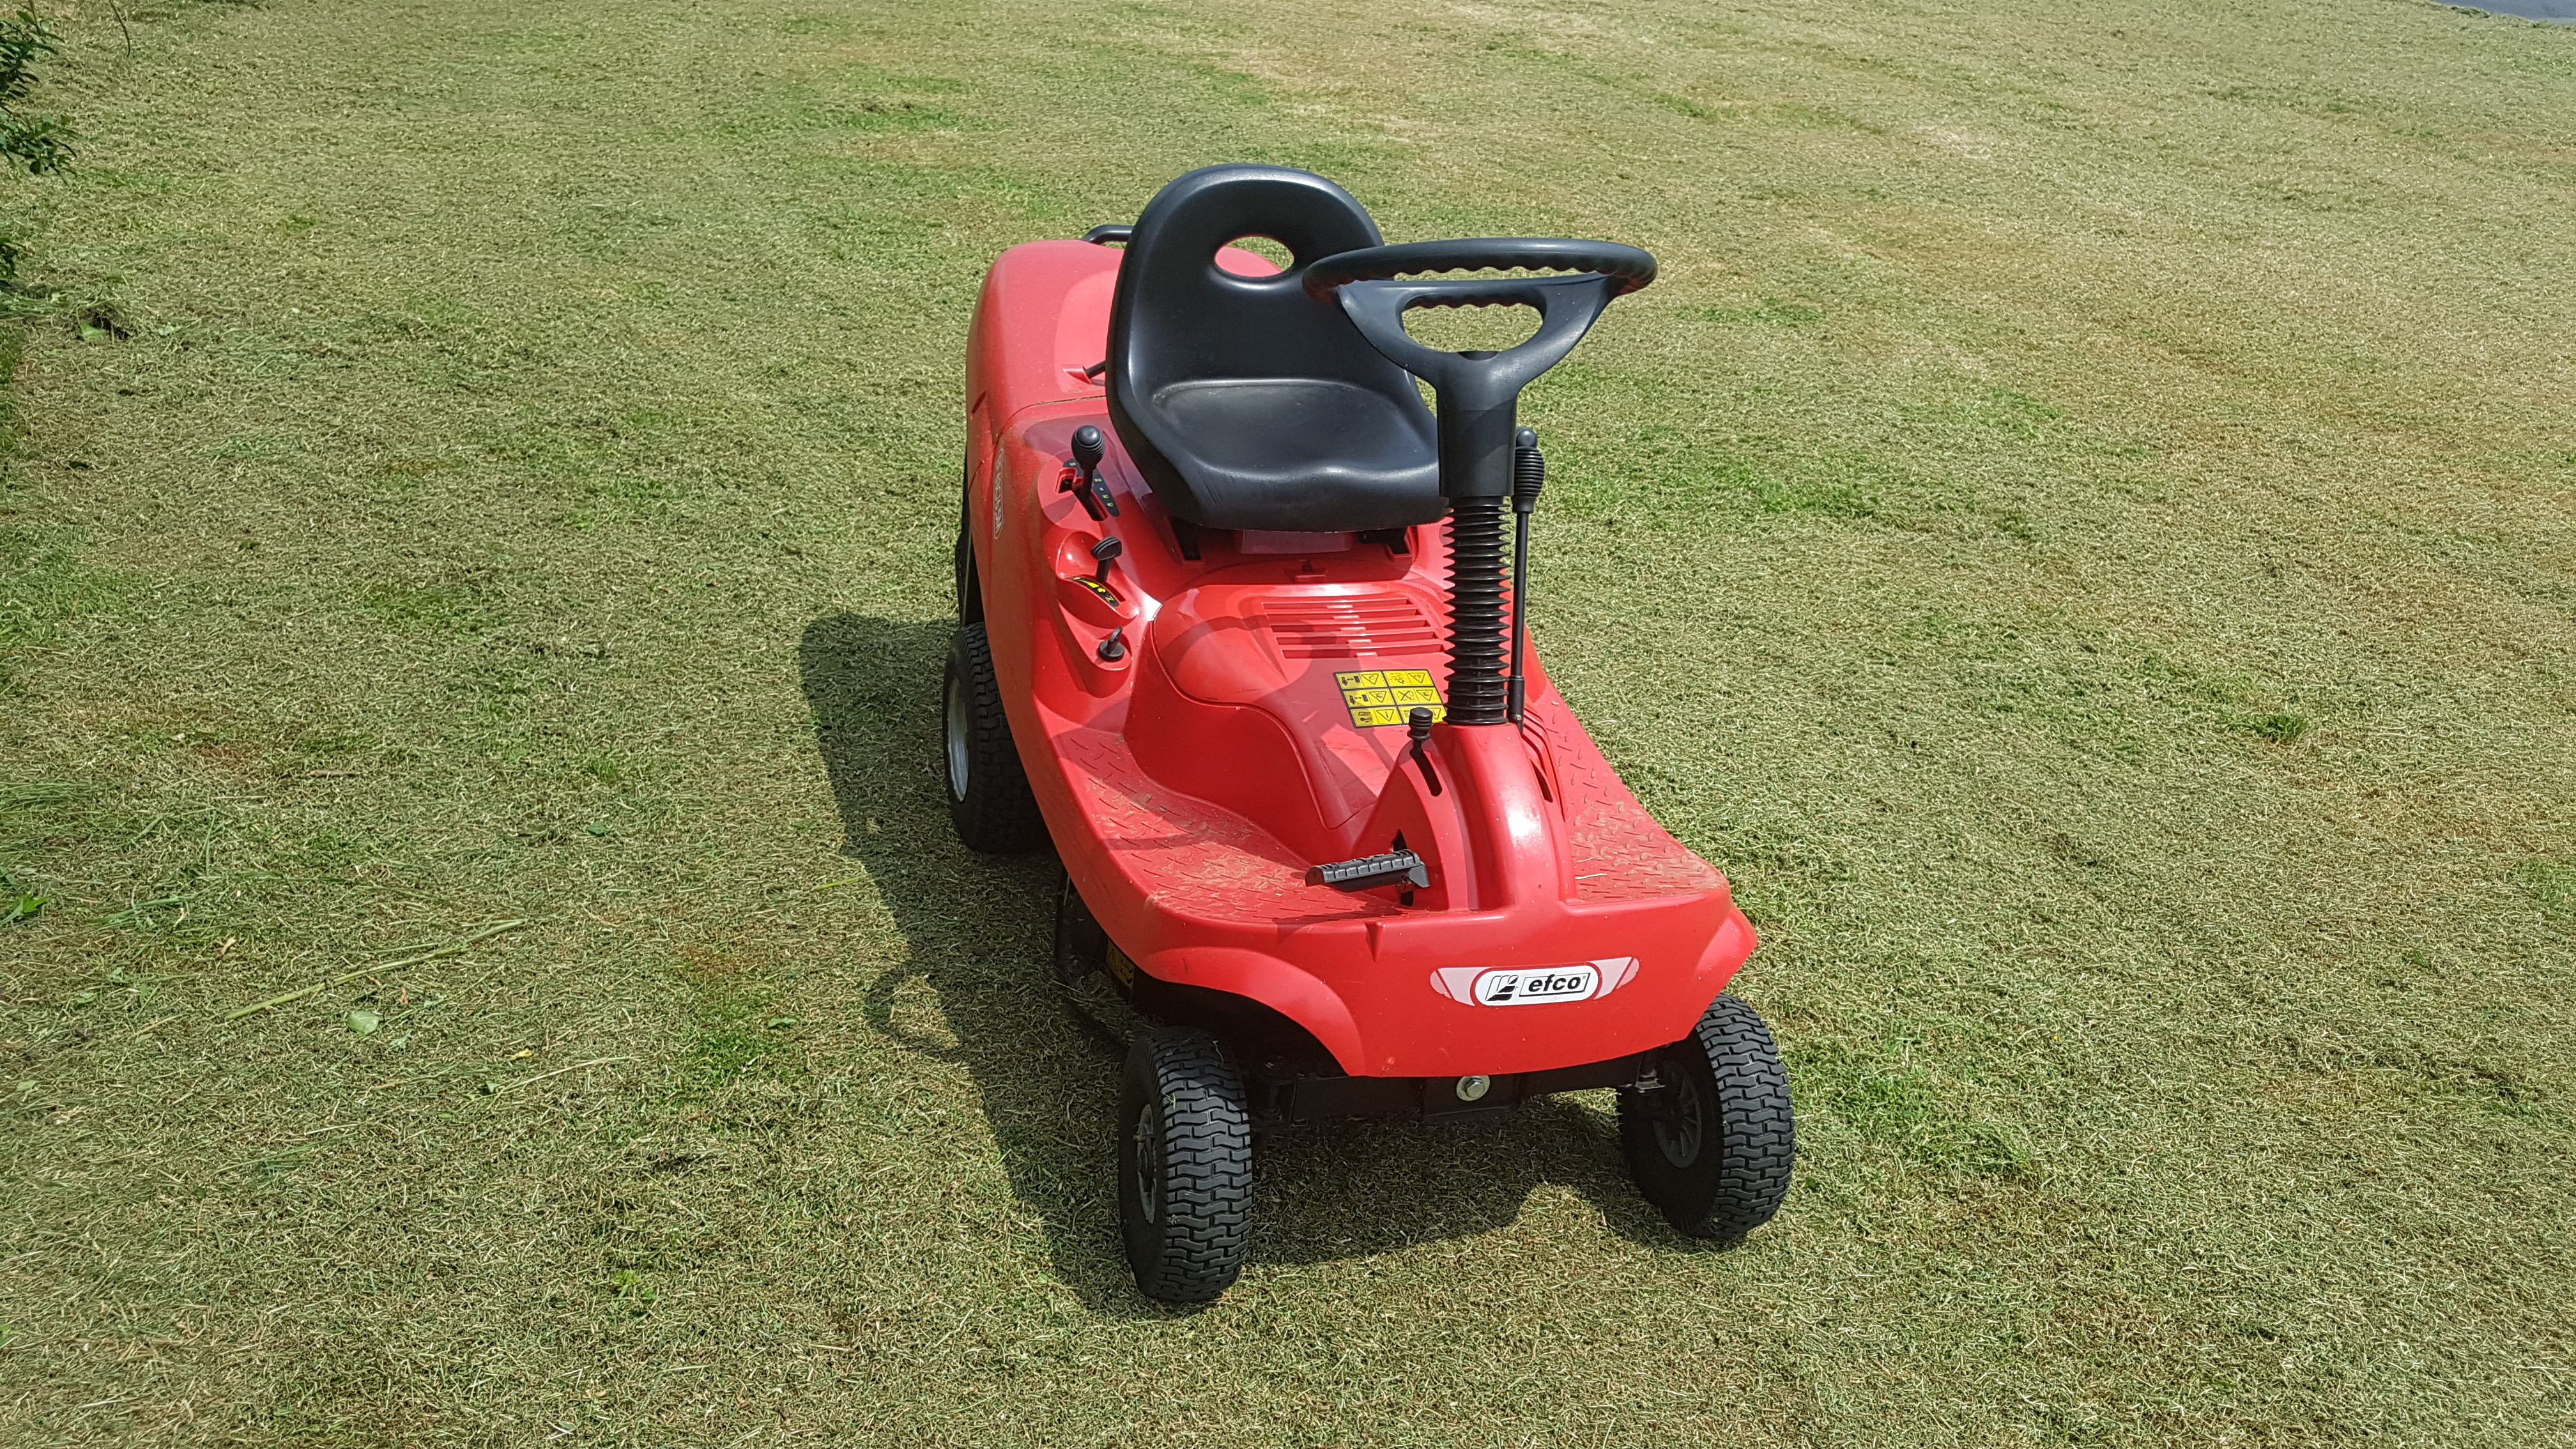 efco-ef63c-ride-on-lawn-mower